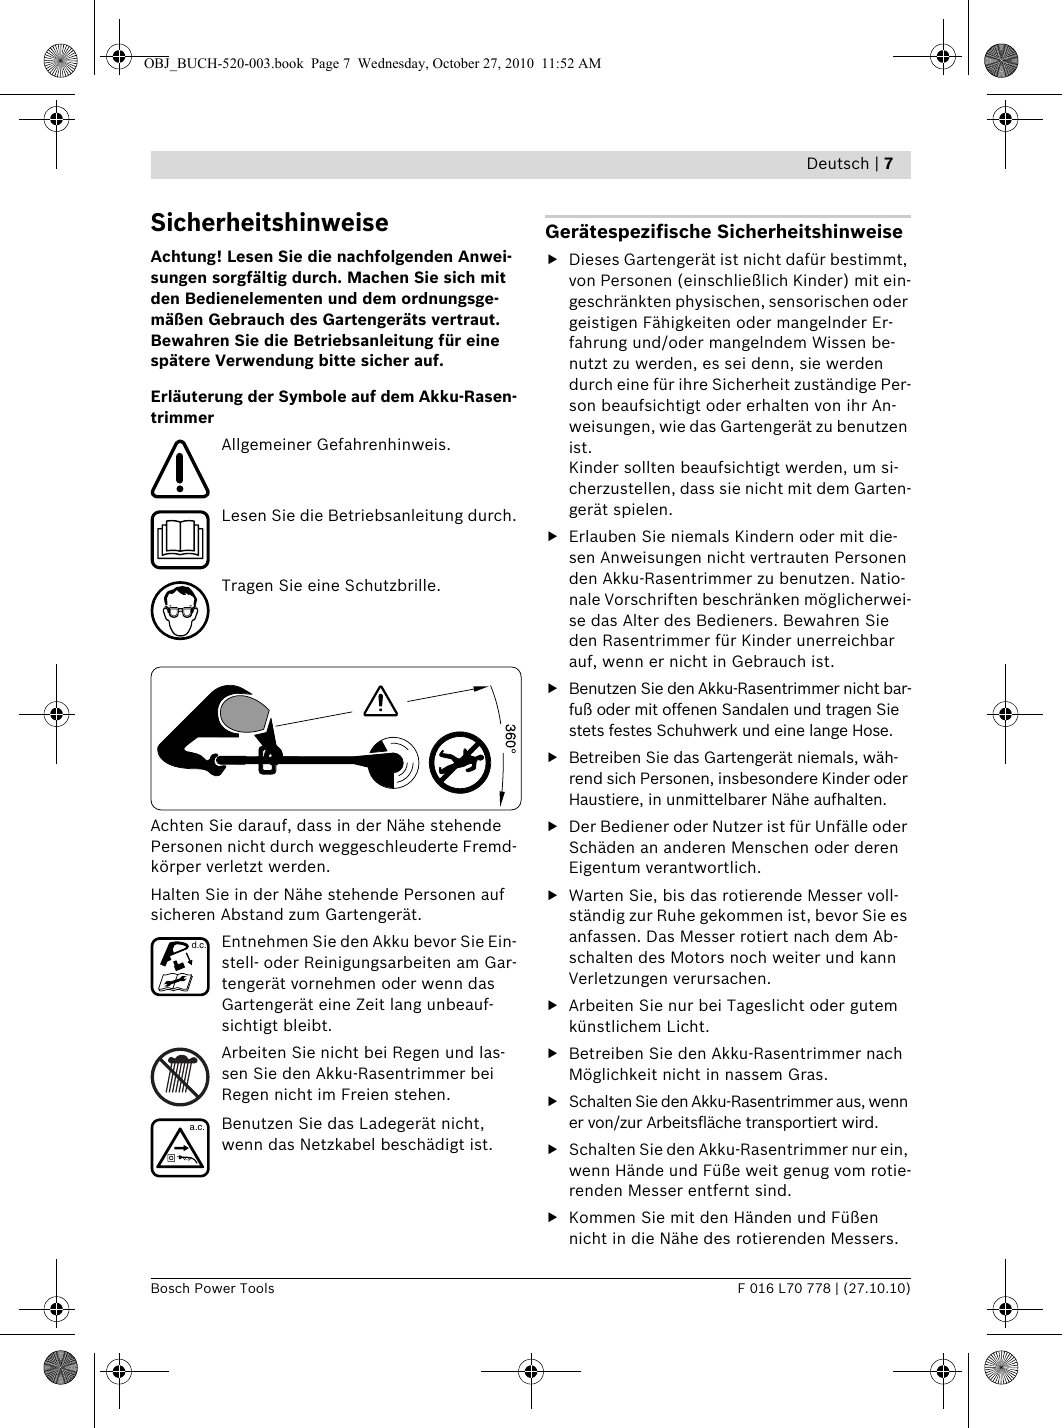 Art26LiManual User Guide Page 7